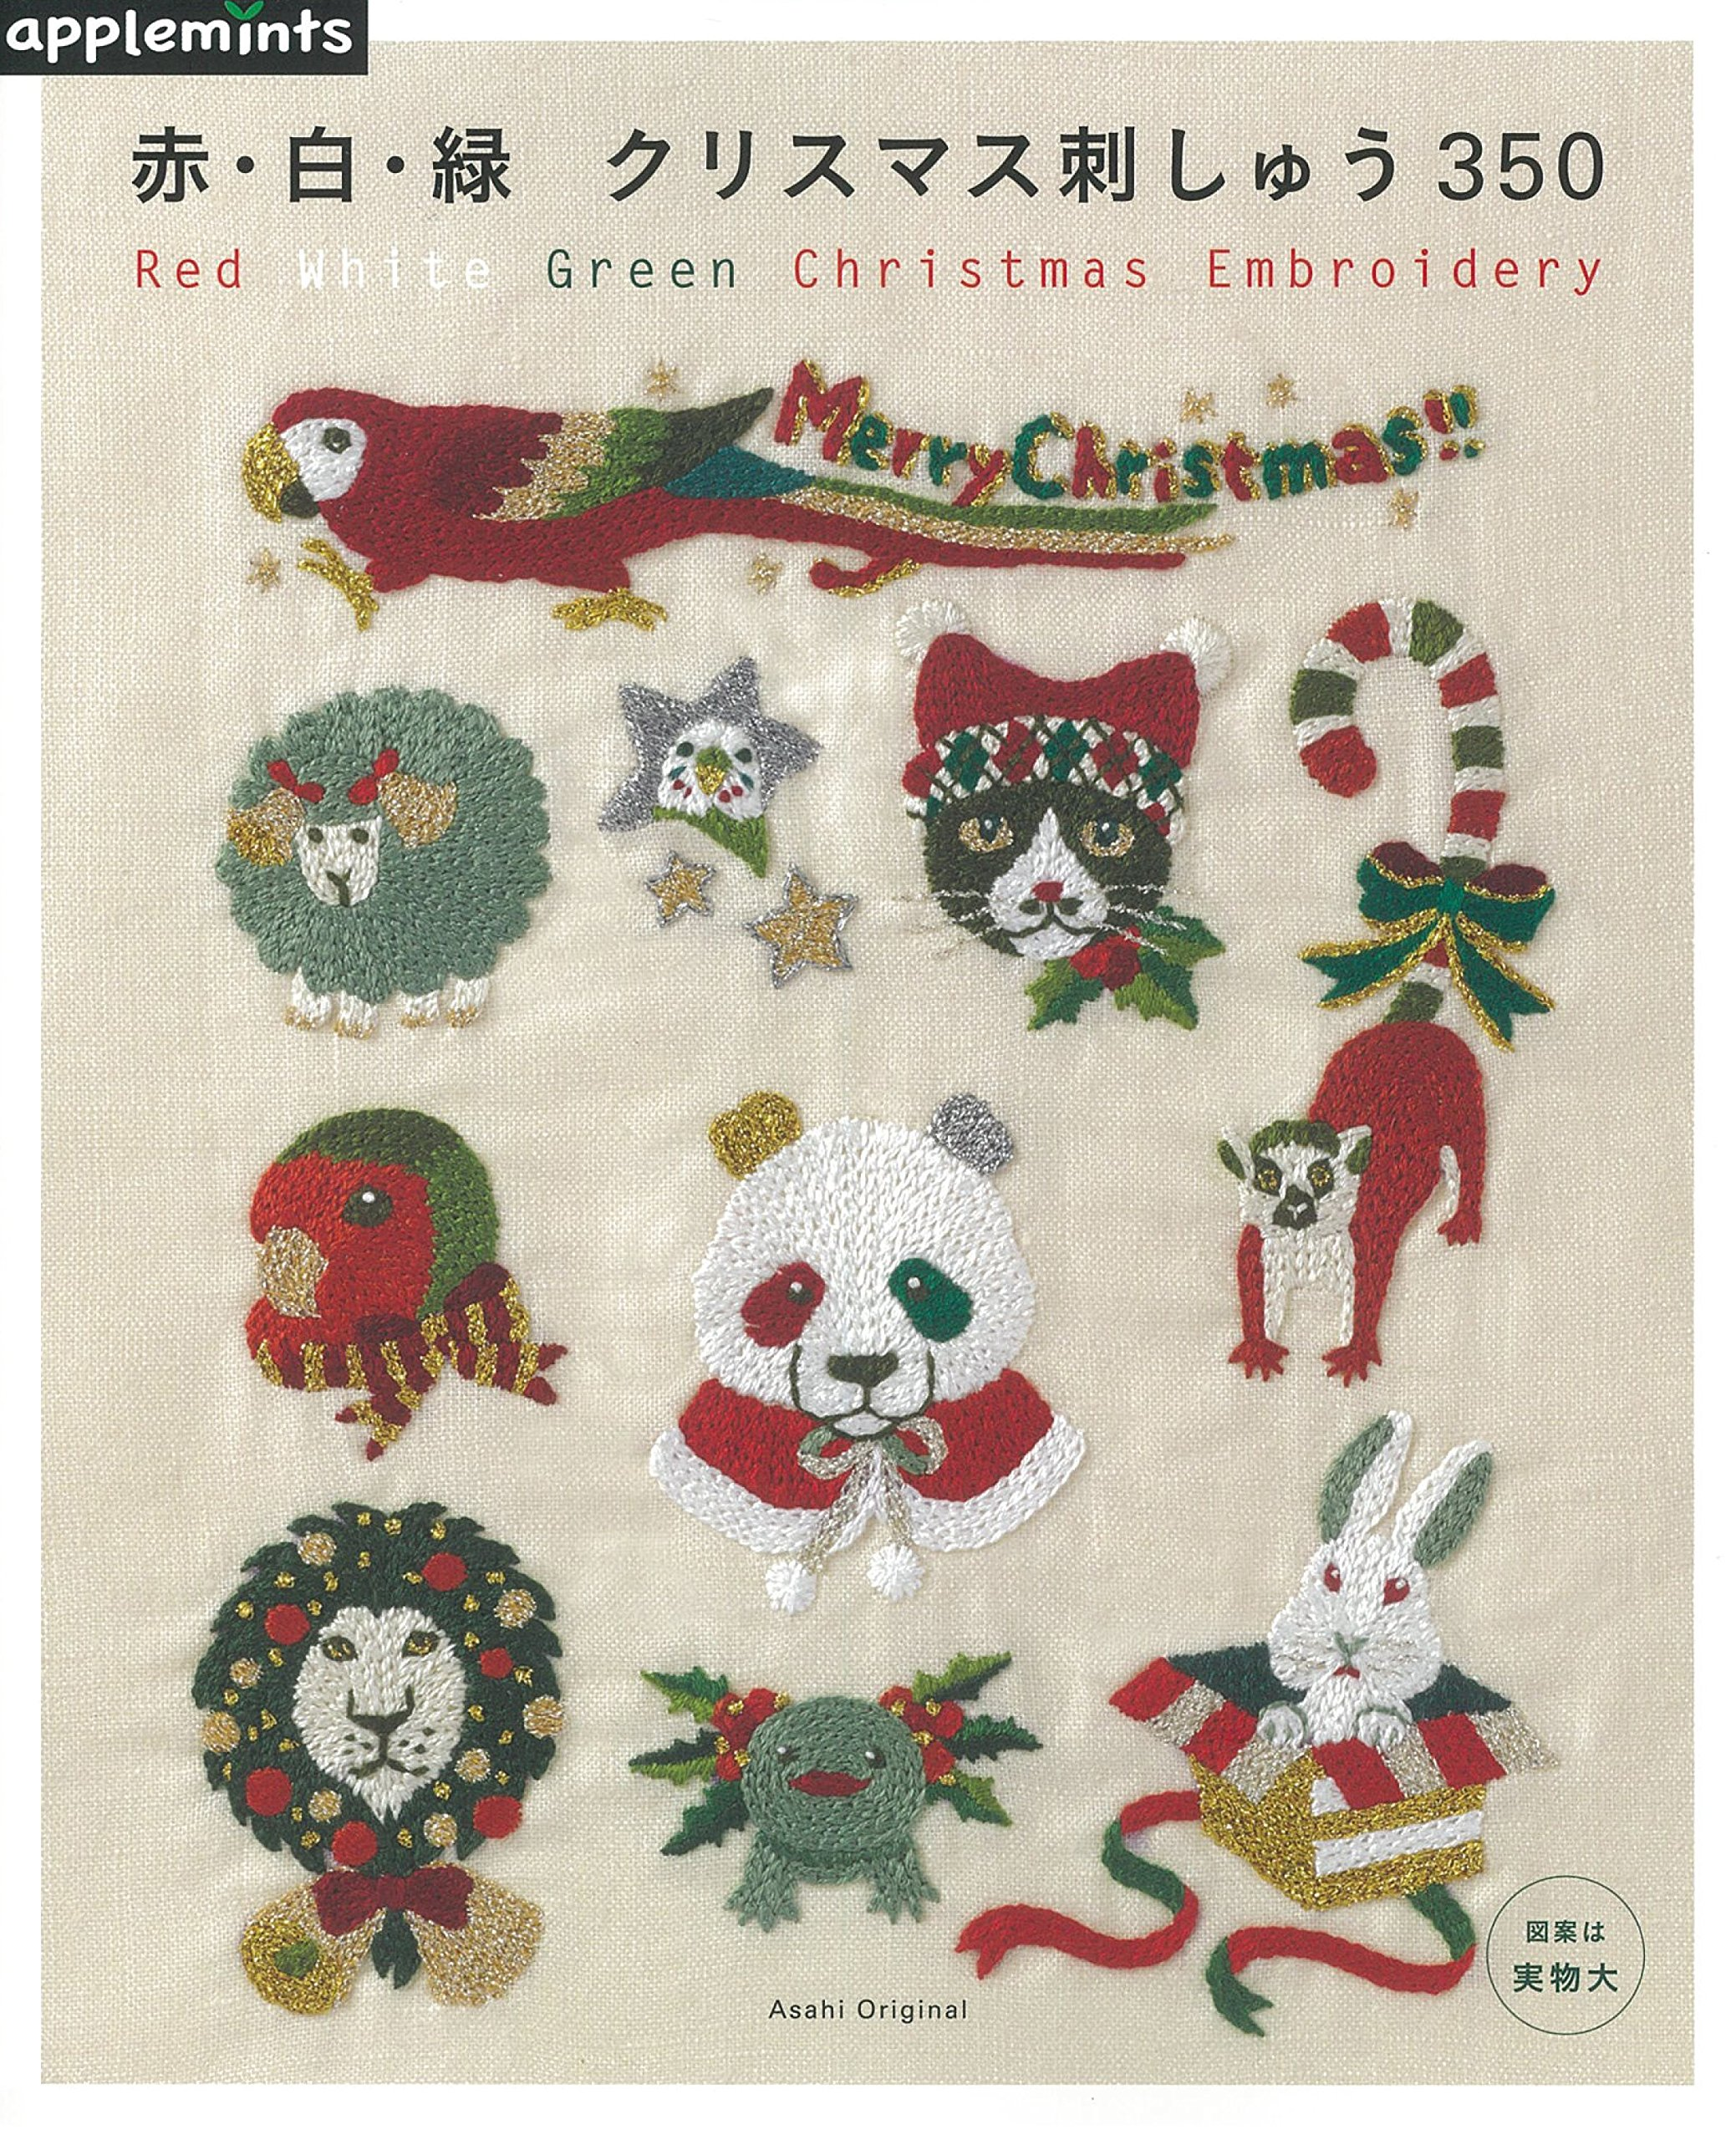 Red white and green stitching Christmas embroidery